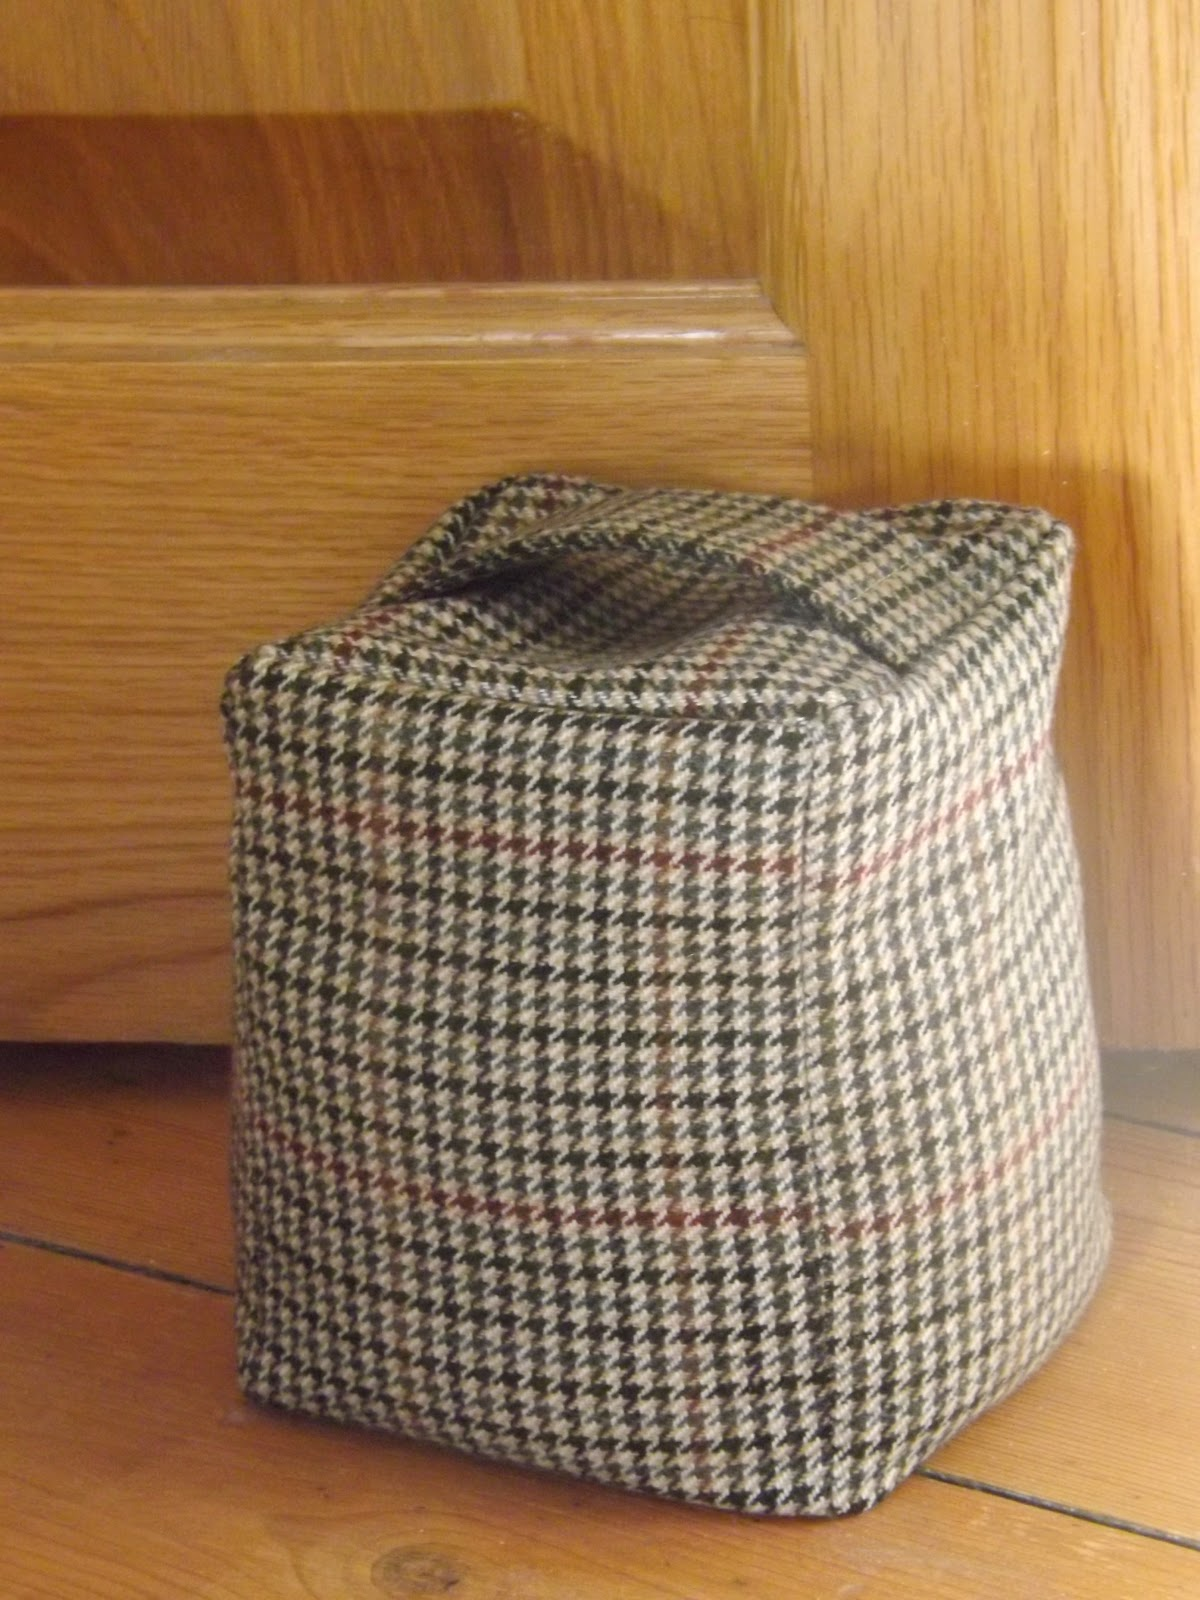 Thrifty Tweed Door-Stop Tutorial & Me and my shadow: Thrifty Tweed Door-Stop Tutorial